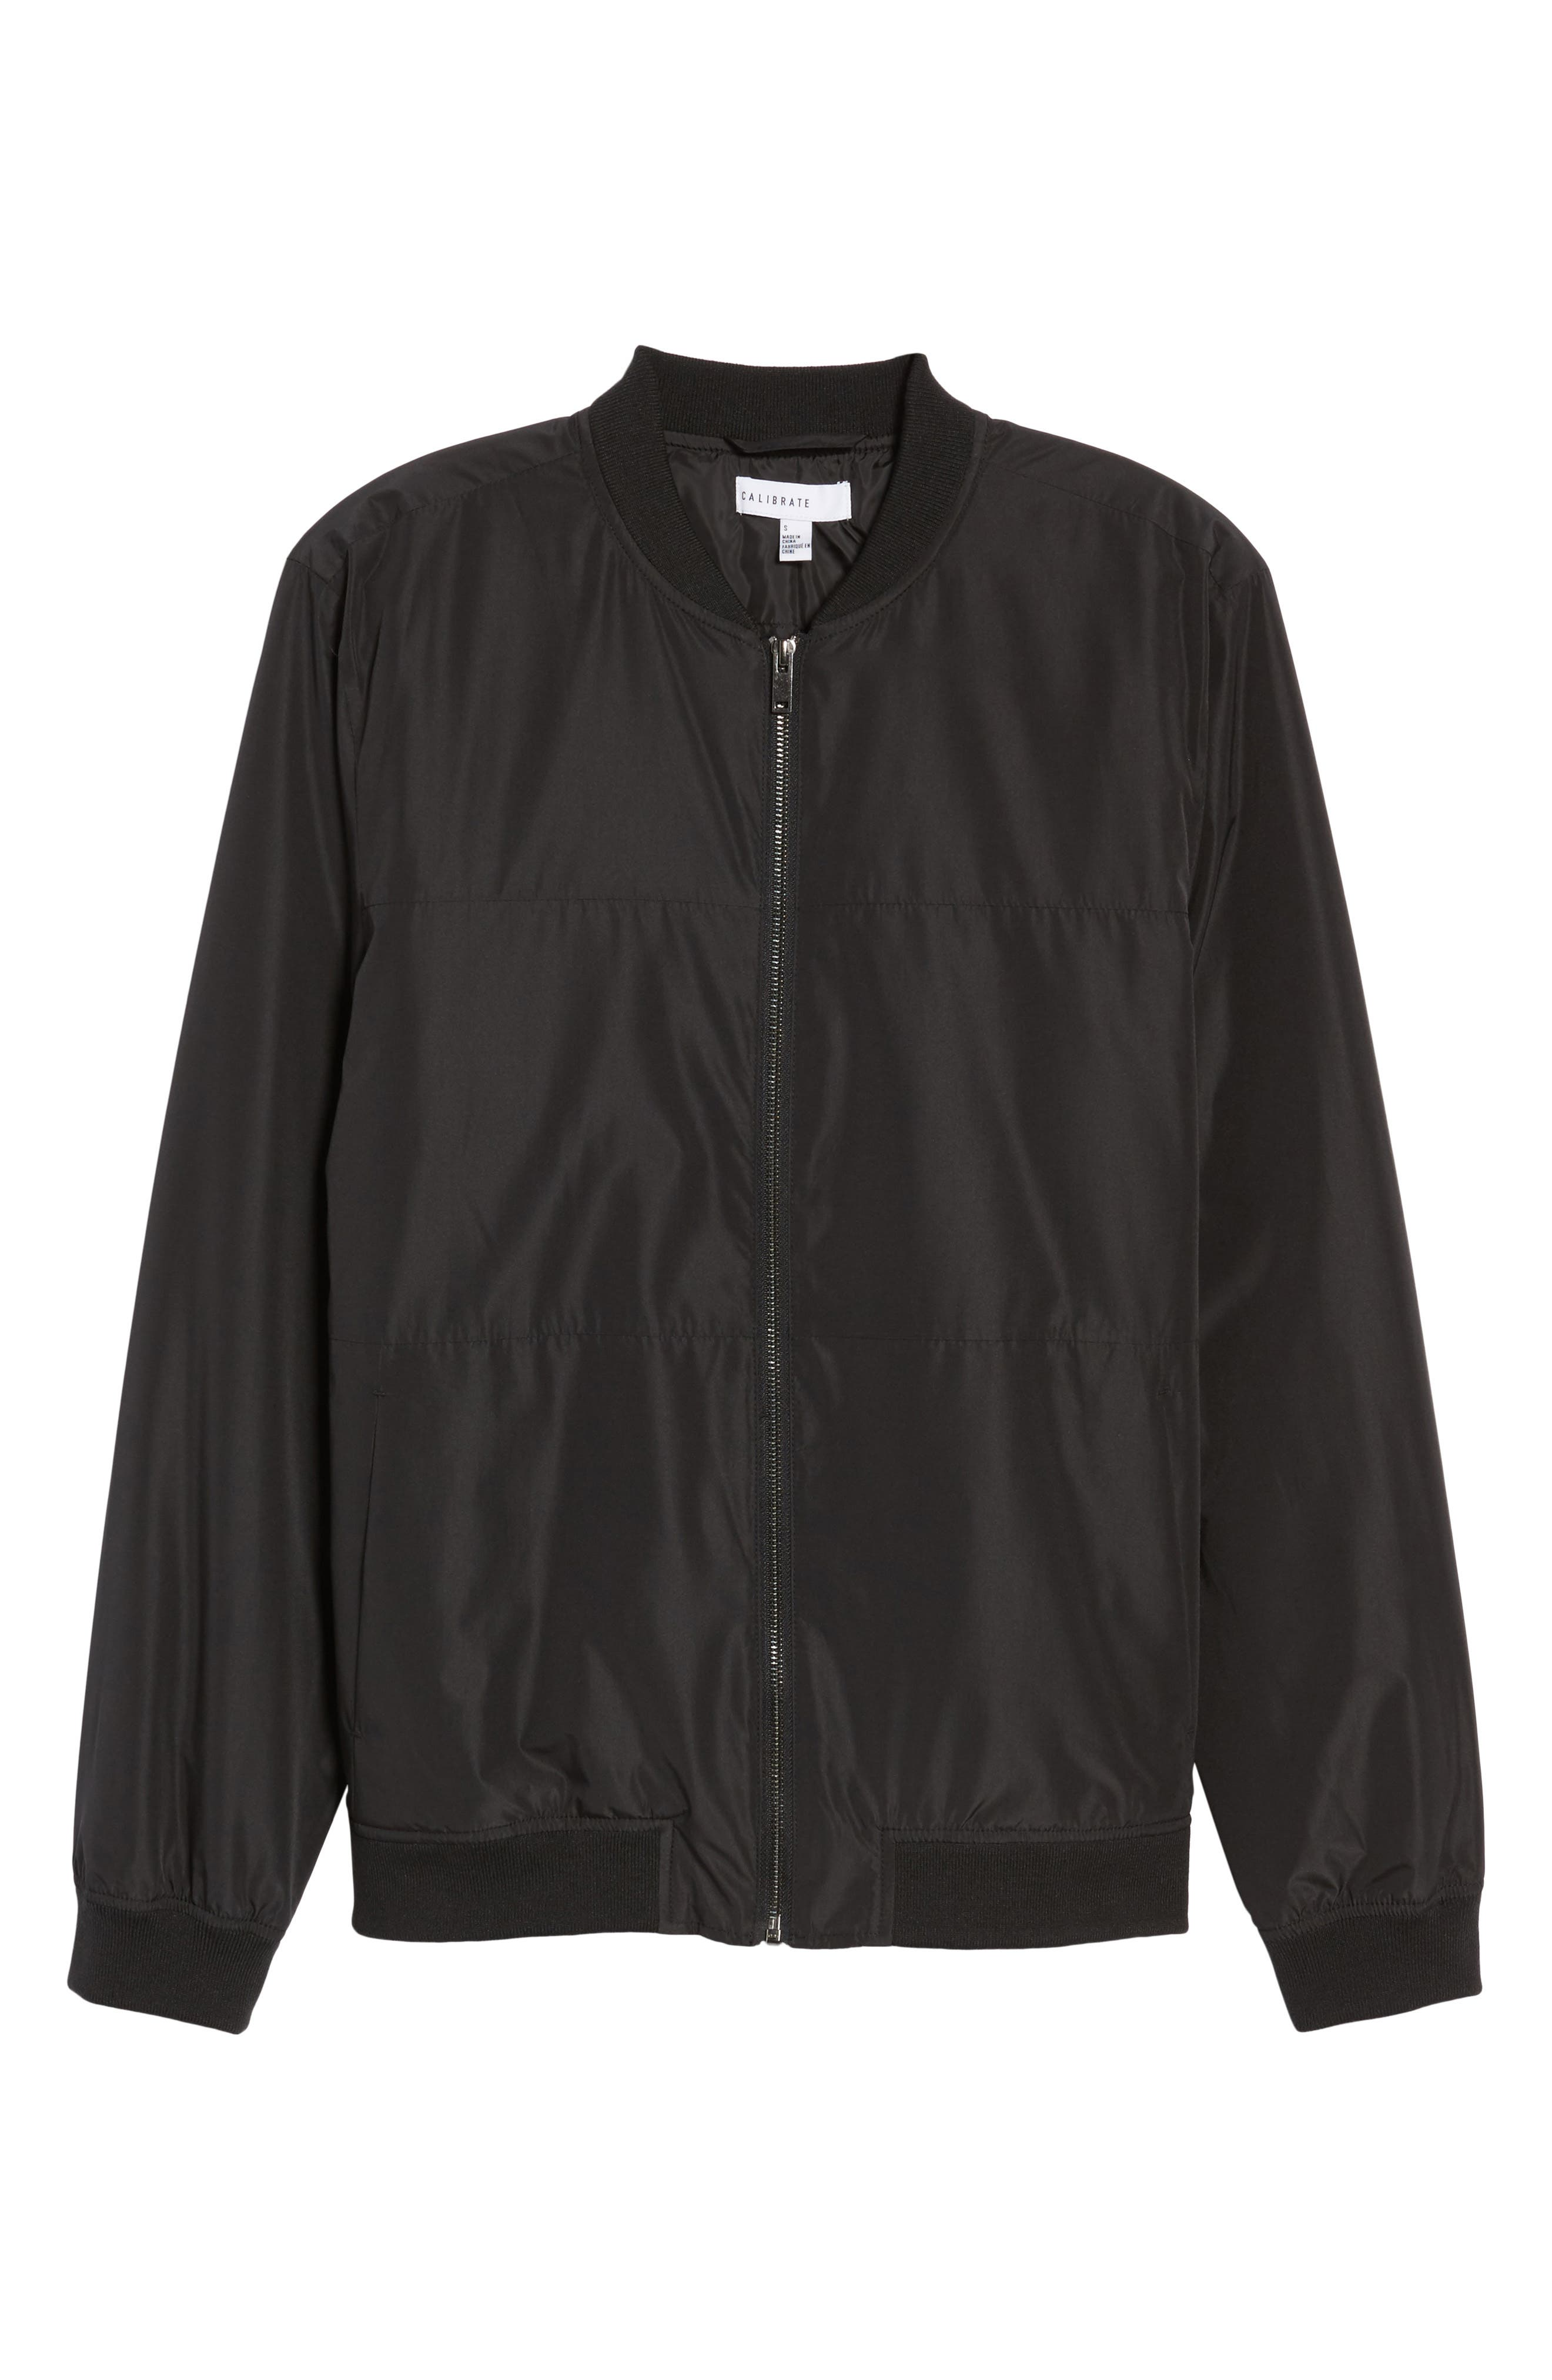 Lightweight Bomber Jacket,                             Alternate thumbnail 6, color,                             Black